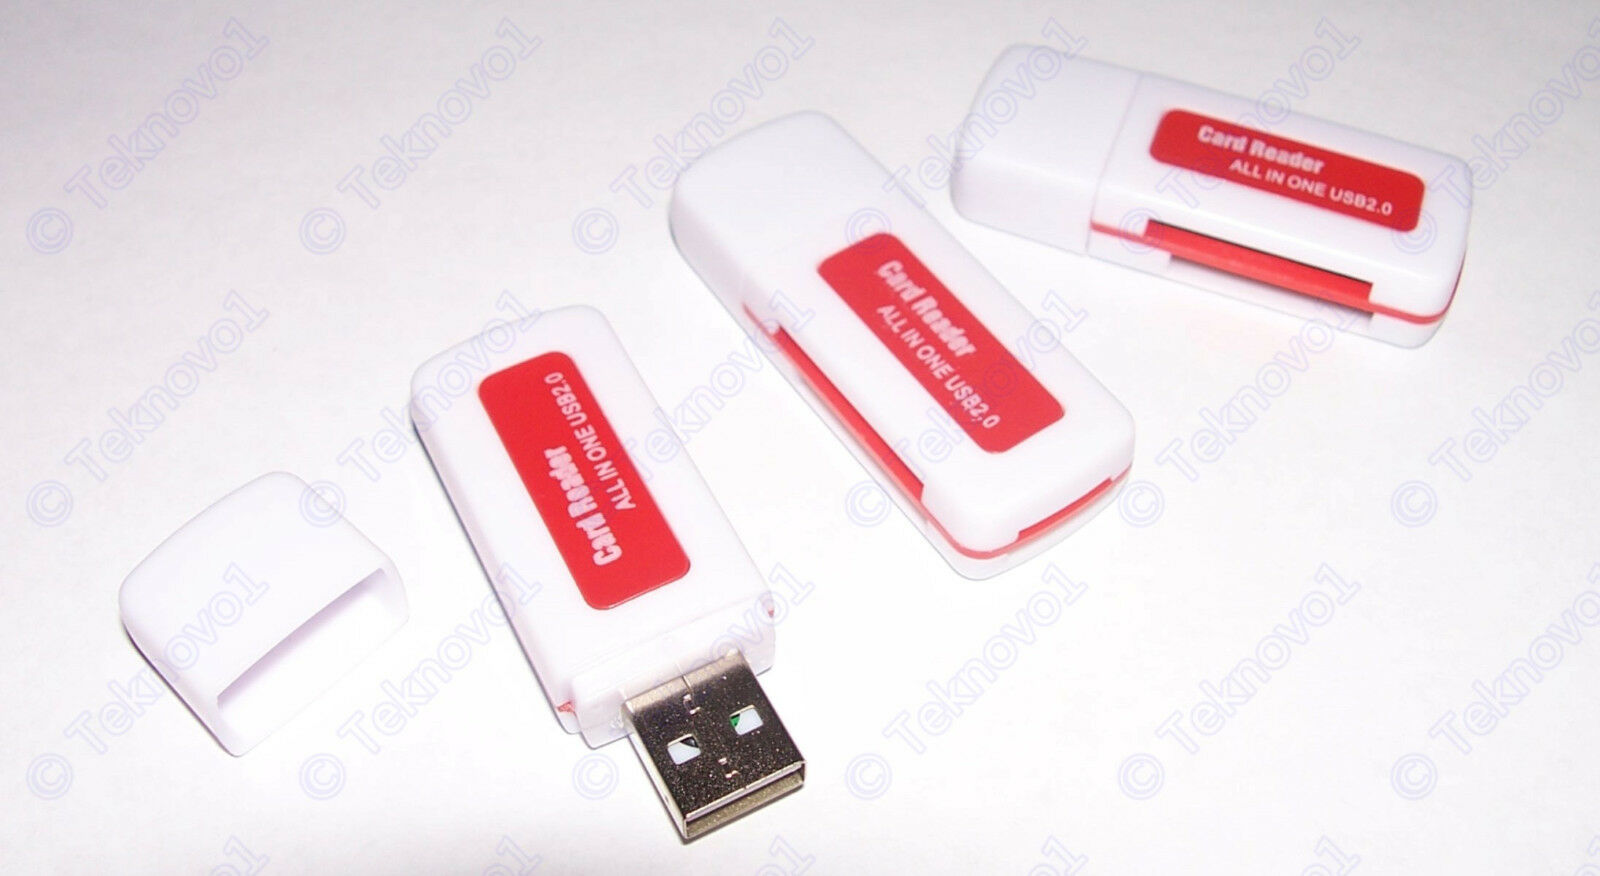 3x All In One Multi Memory Adapter Micro Sd Card Reader To Usb Mobile Mate For Microsd 1 Of 2 See More